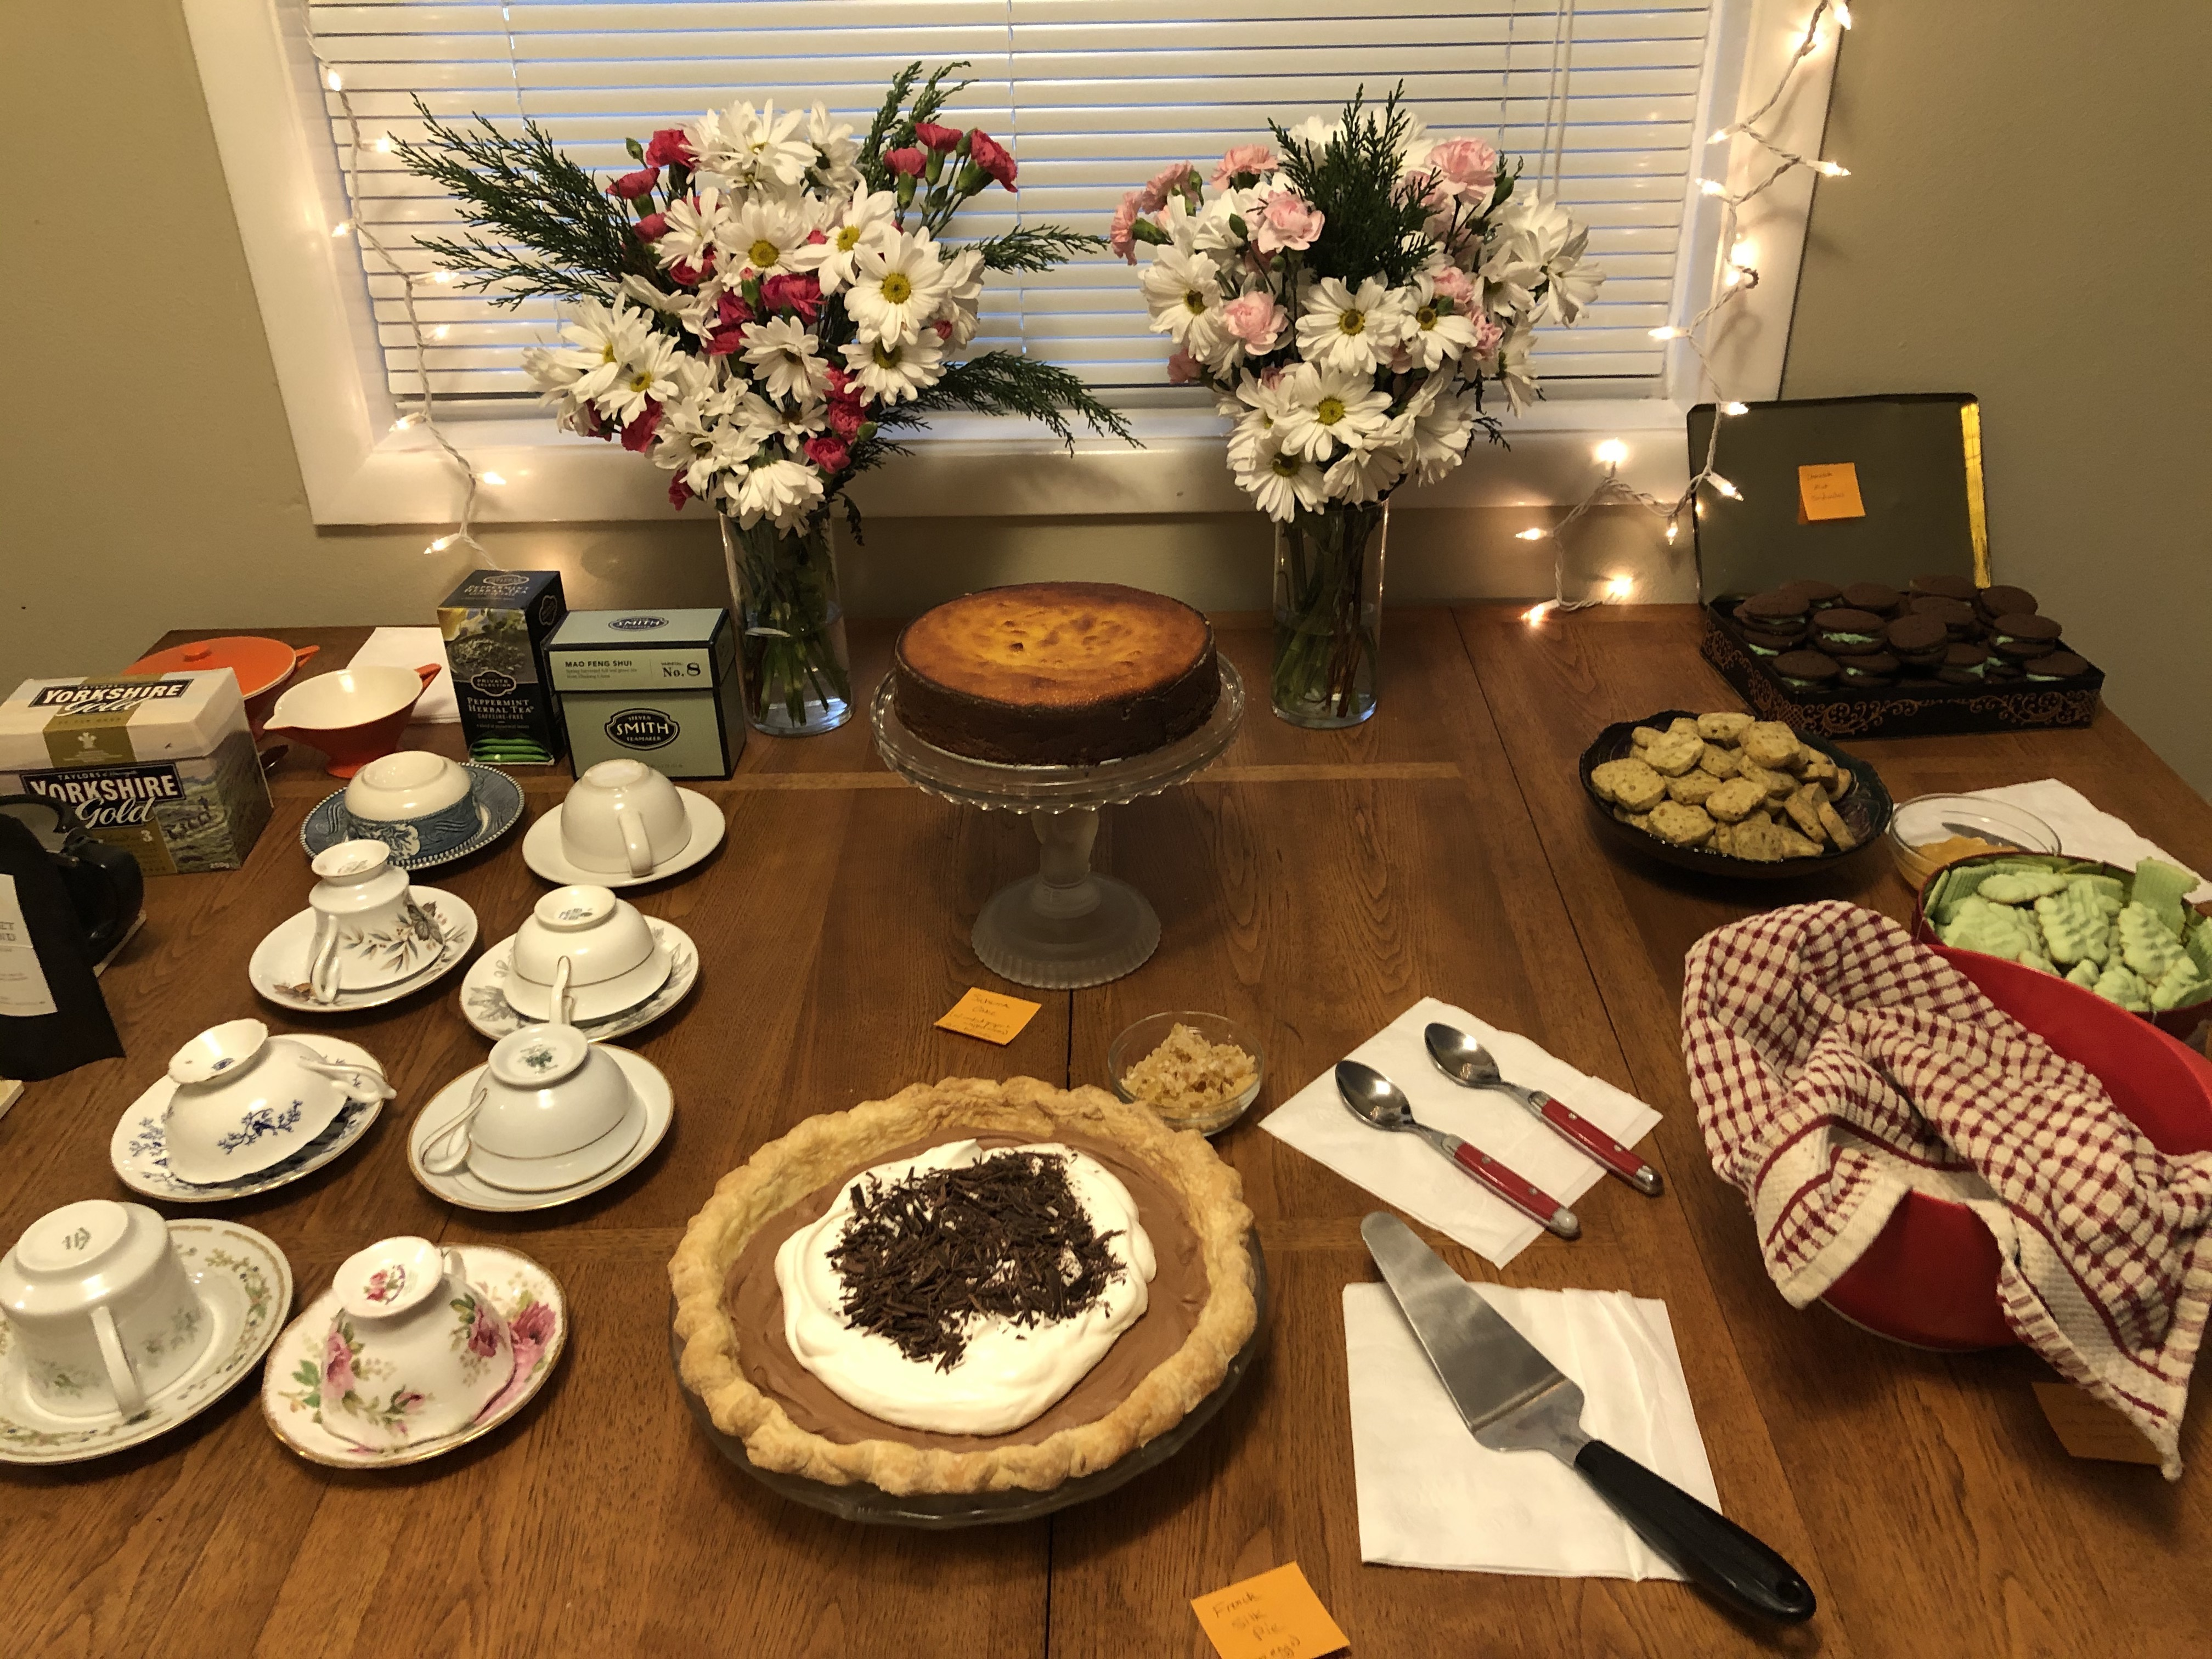 A table filled with desserts. There's an orange cake on a glass cake stand, a chocolate pie, three tins of Christmas cookies, two vases of fresh flowers, and a line-up of teacups and tea to the side.